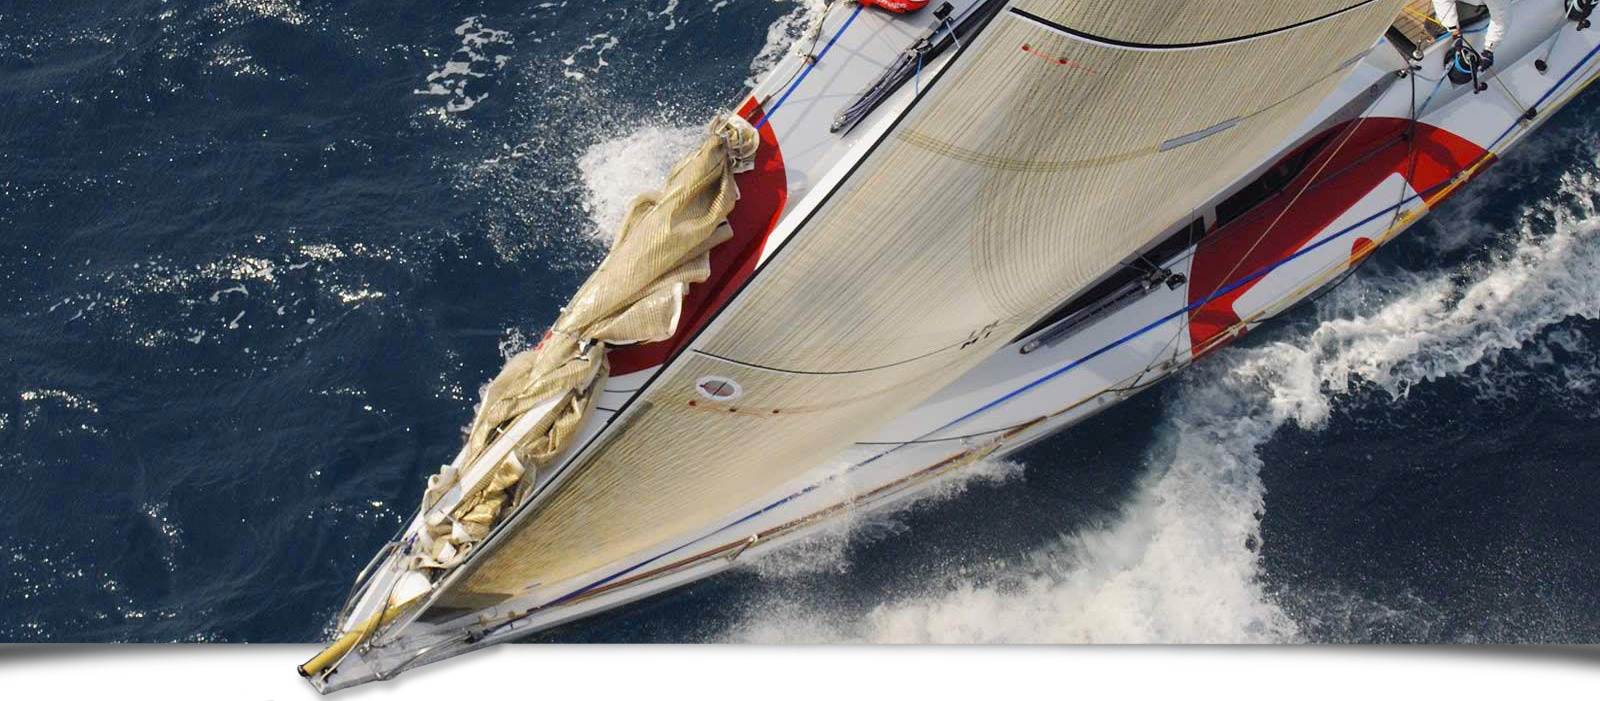 aryayachts cantiere navale